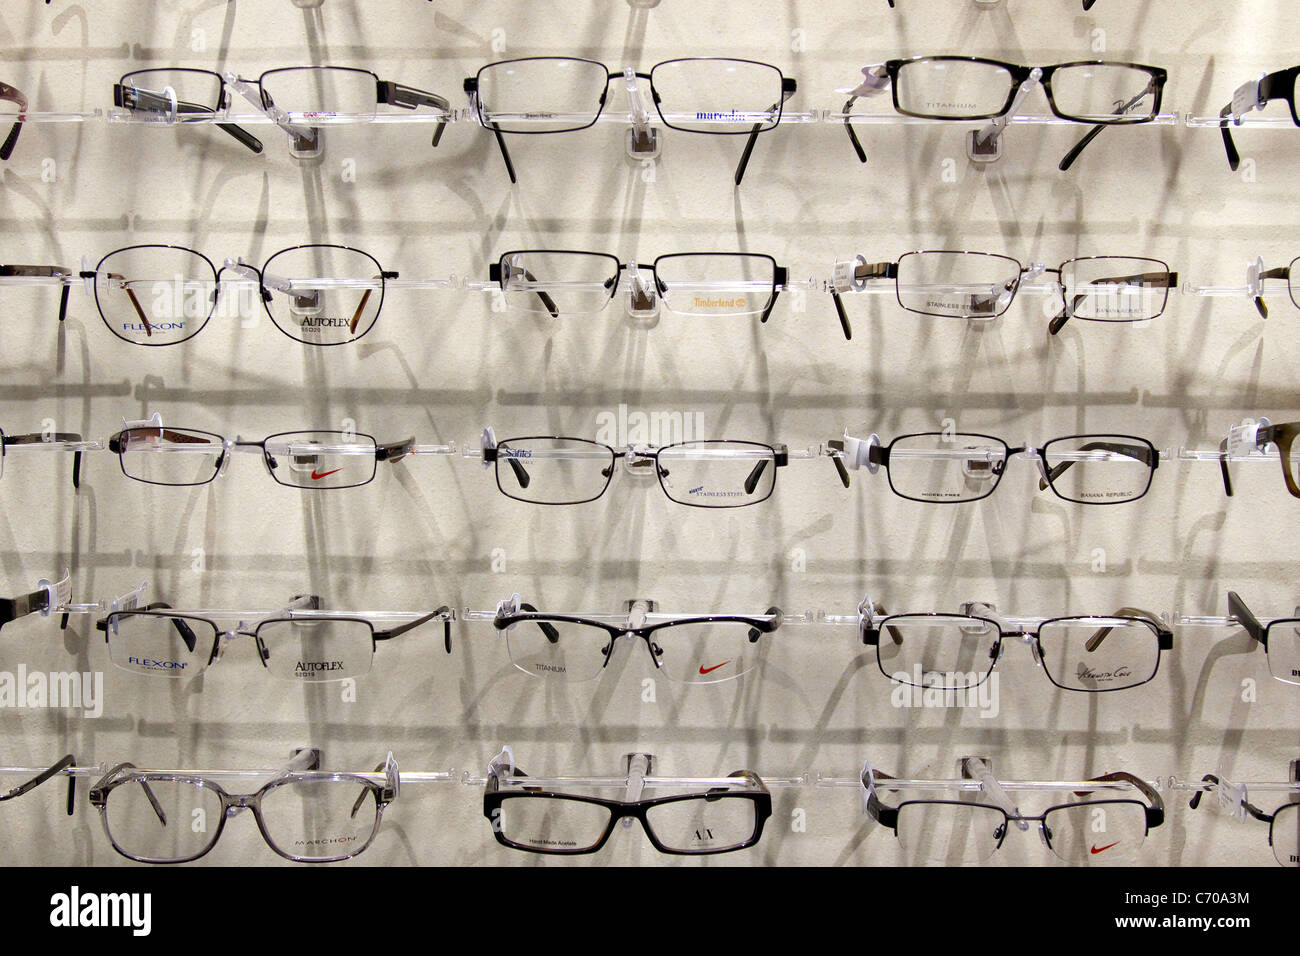 Eyeglasses, spectacles, on display at eye doctor office. - Stock Image